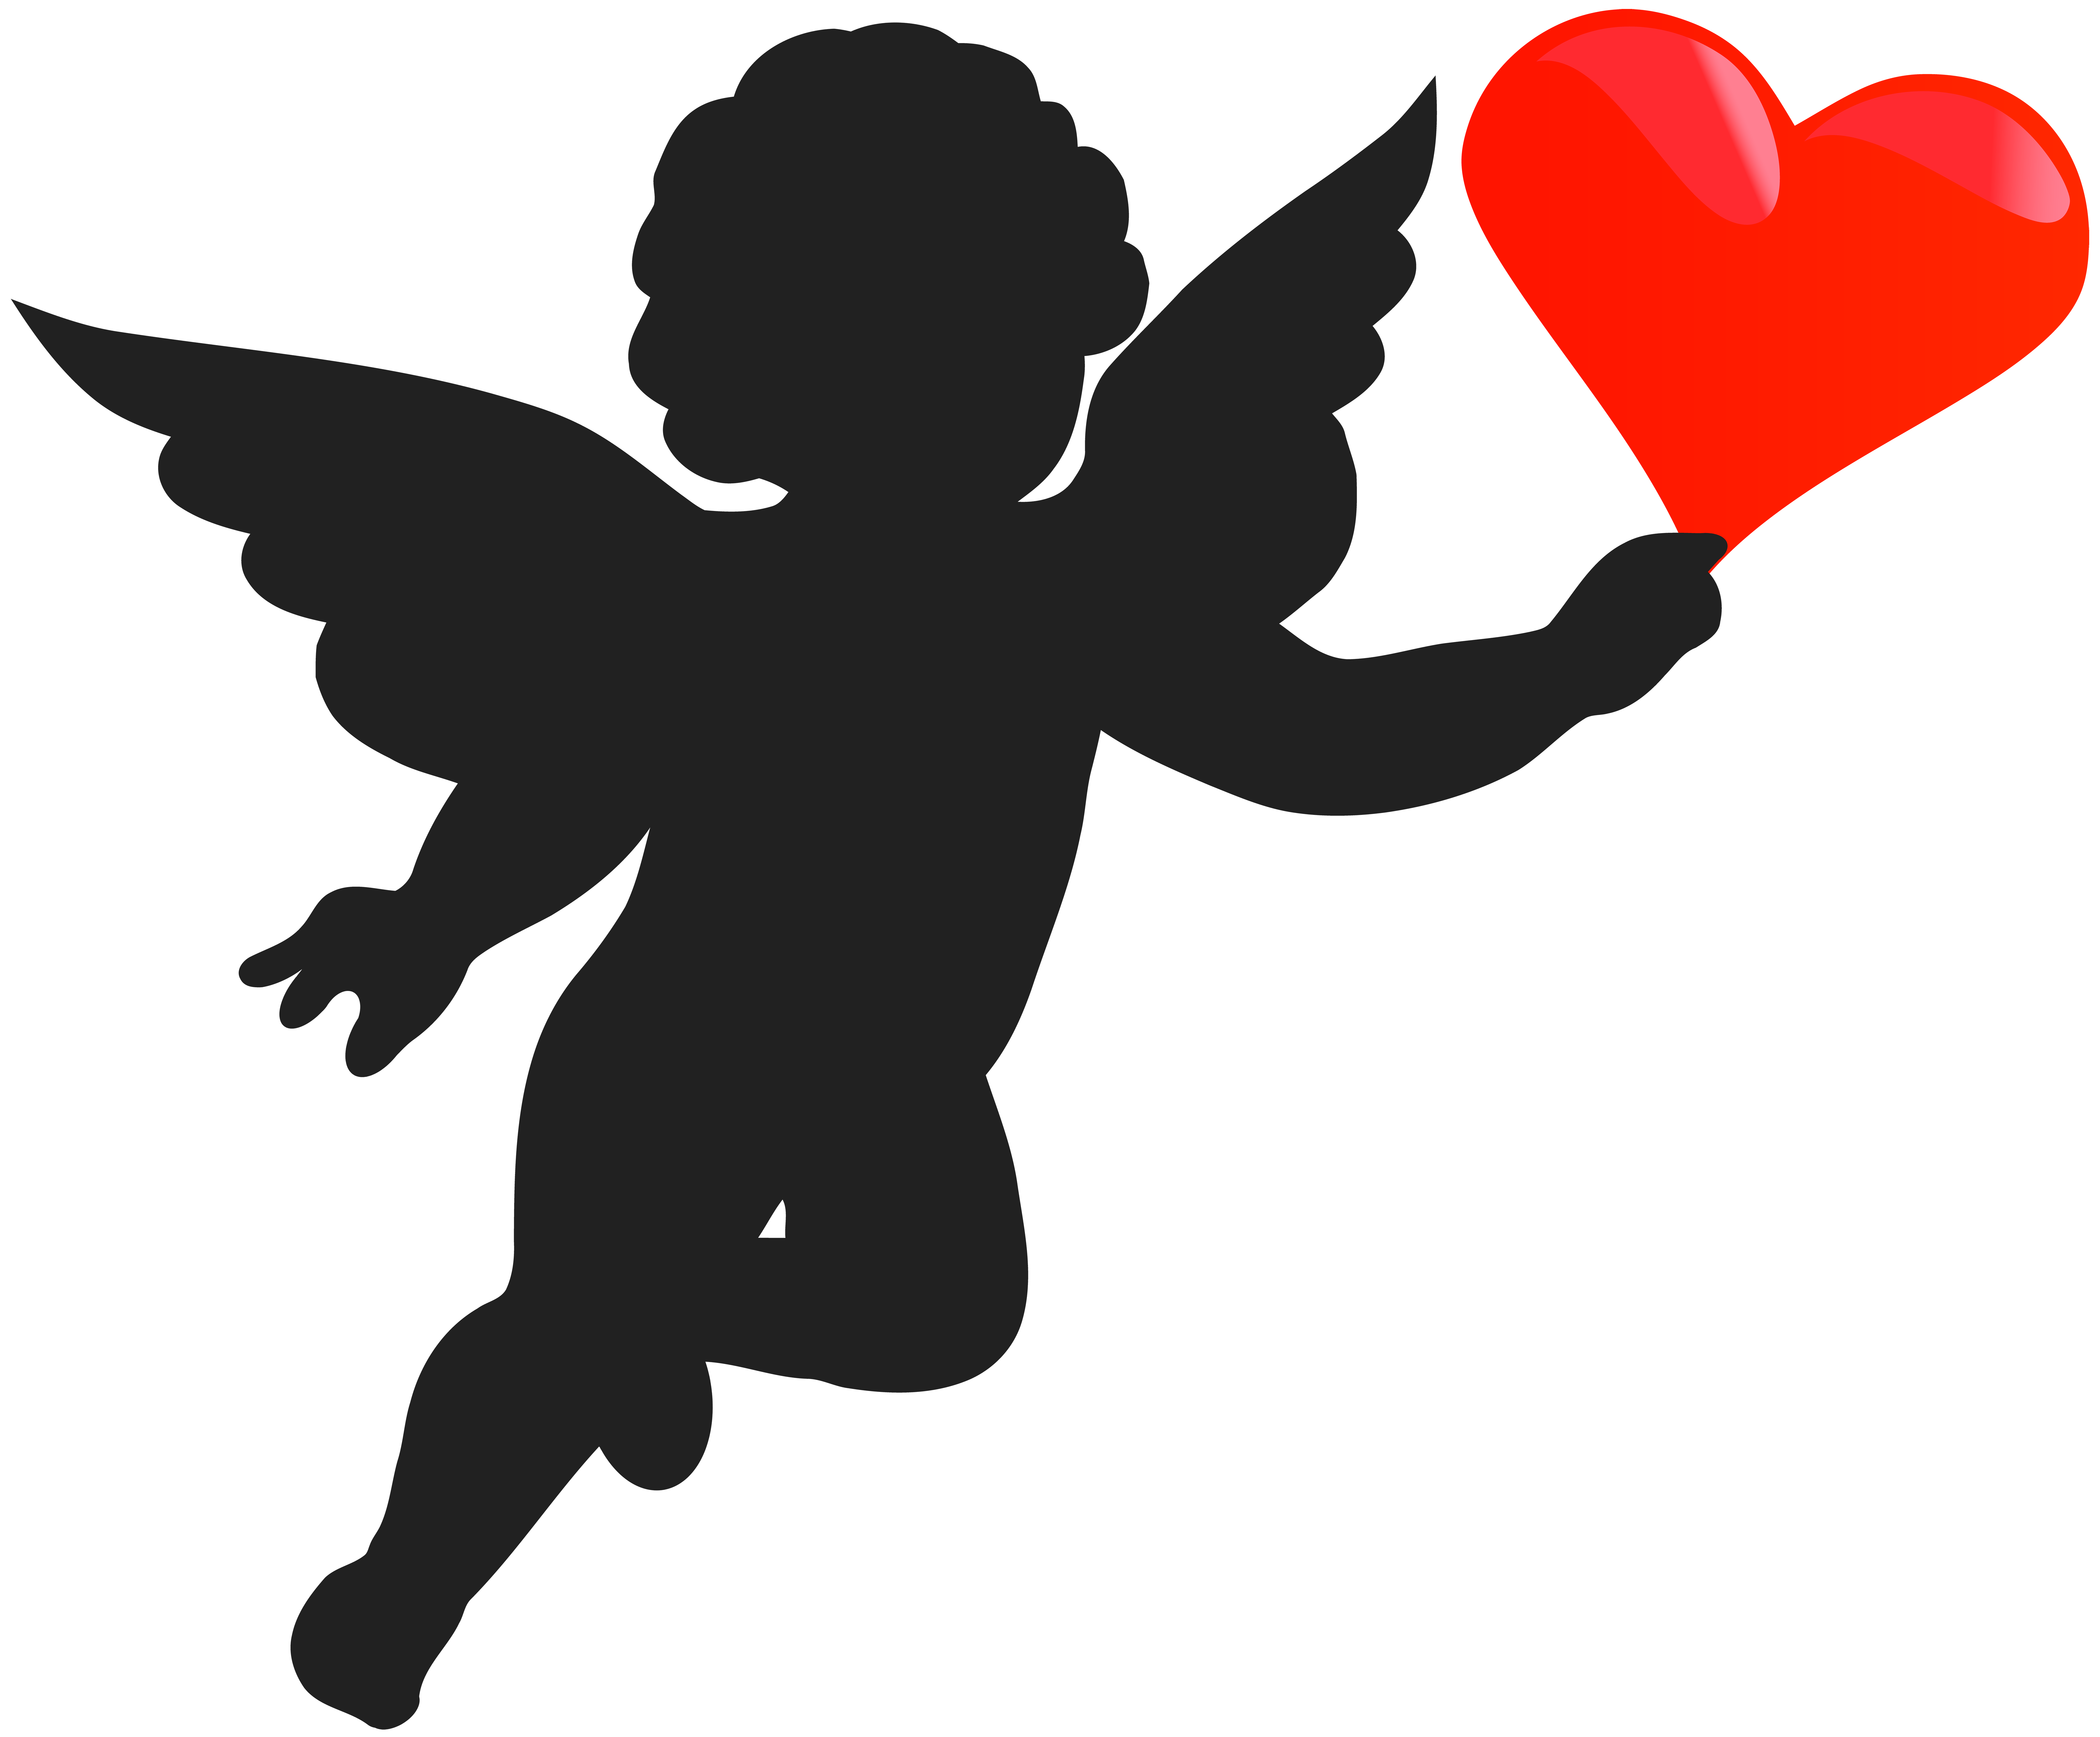 cupid with heart silhouette png clip art image [ 8000 x 6619 Pixel ]